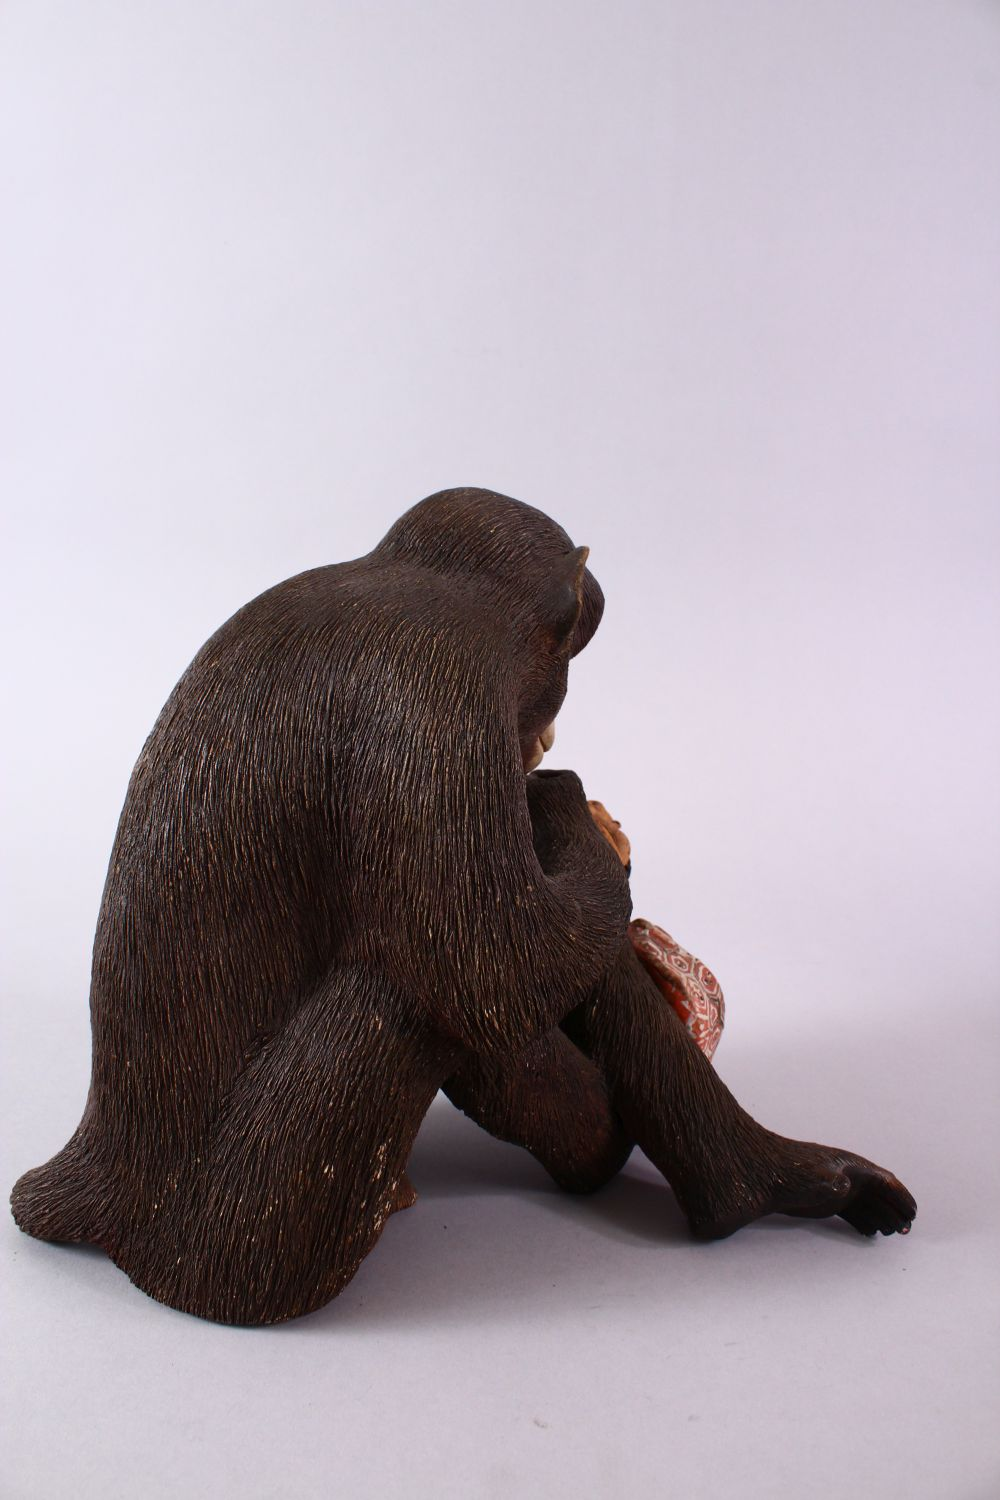 A JAPANESE POTTERY / TERRACOTTA MODEL OF A SEATED MONKEY, the monkey in a seated position holding - Image 5 of 10